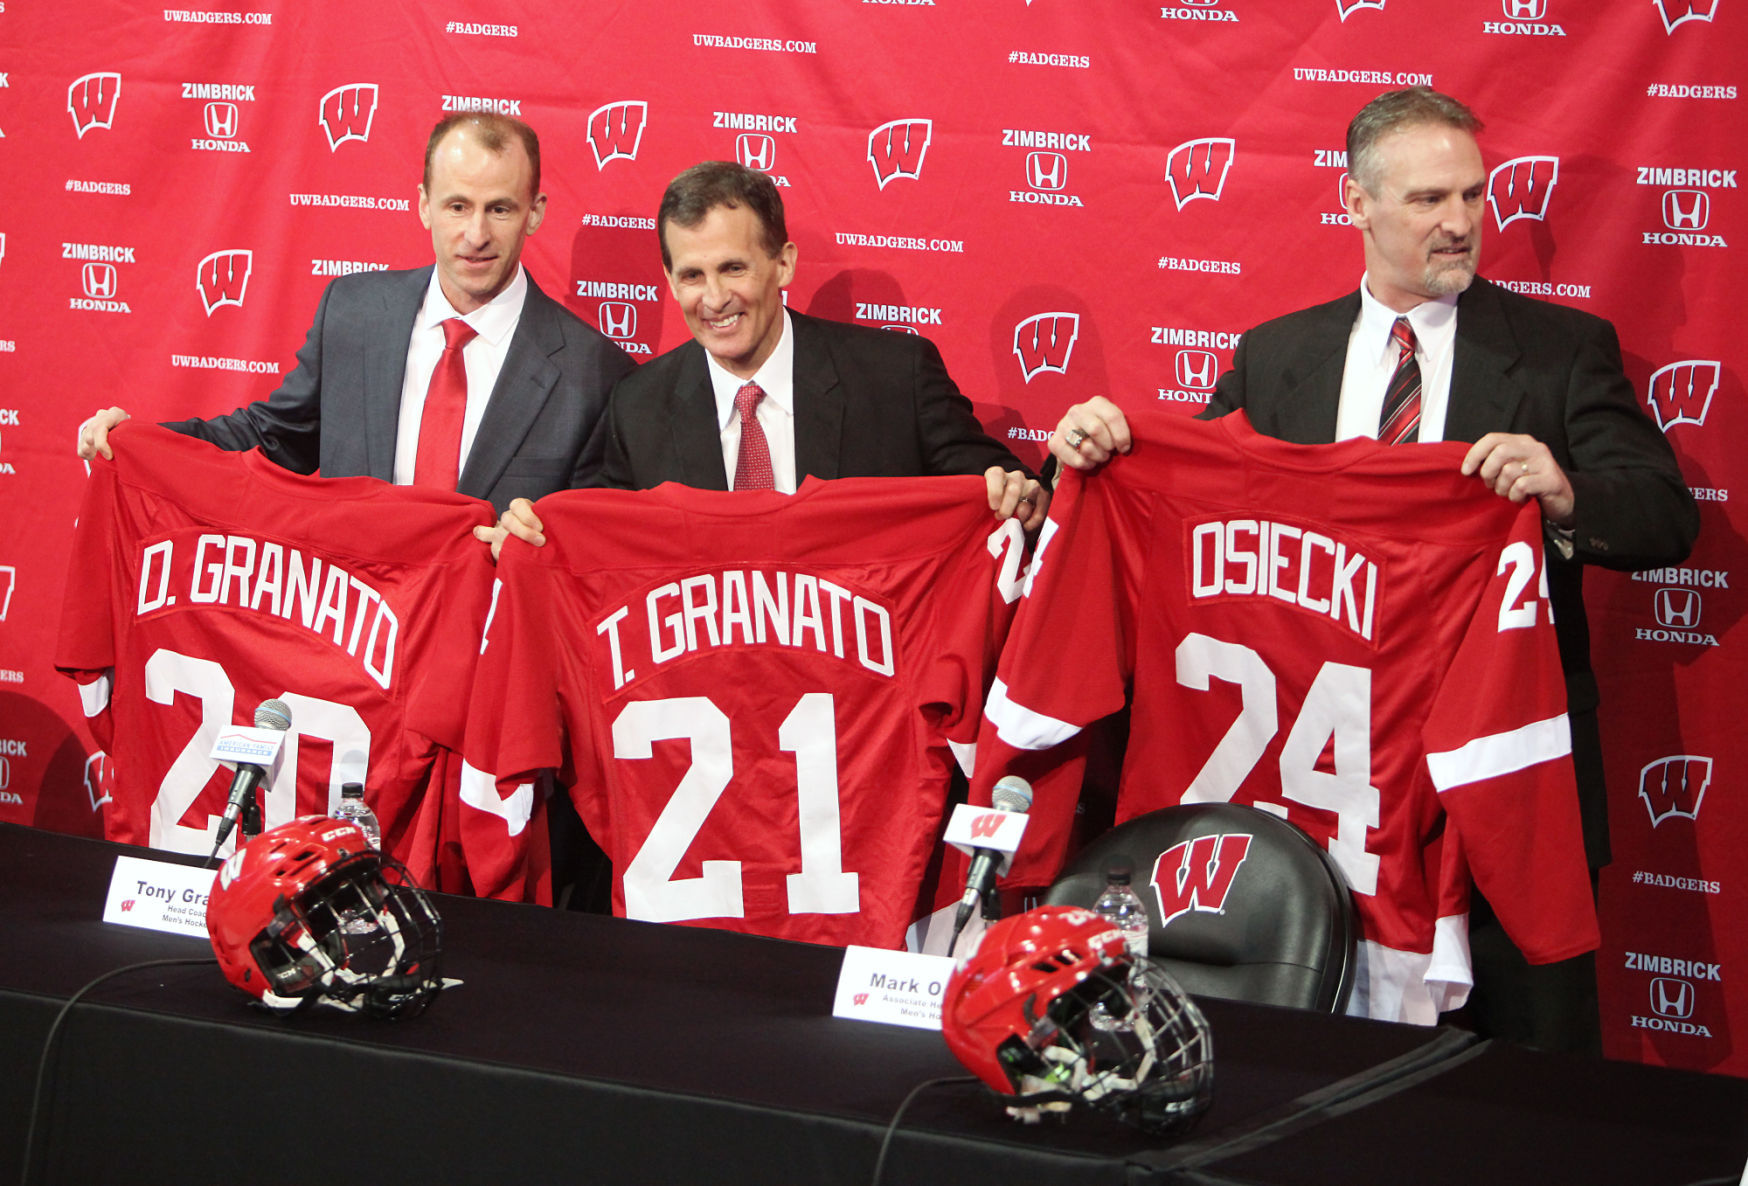 BIG10: Badgers Sports - New Coaches' Contracts Significantly Higher Than Predecessors